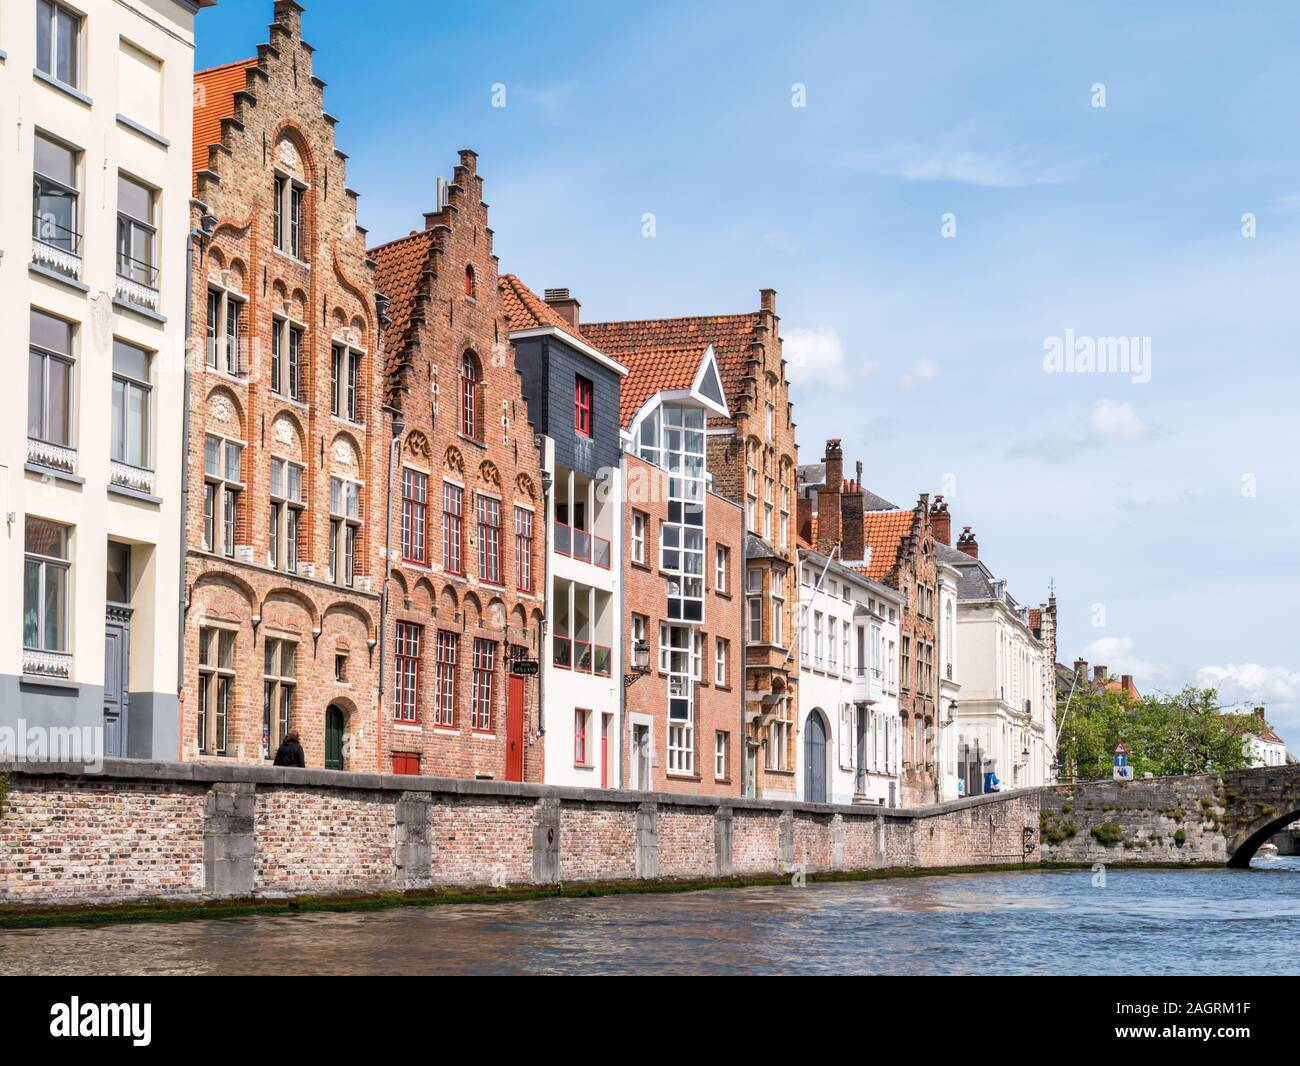 Historic old and new facades of houses along Spiegelrei canal in Bruges, Belgium Stock Photo